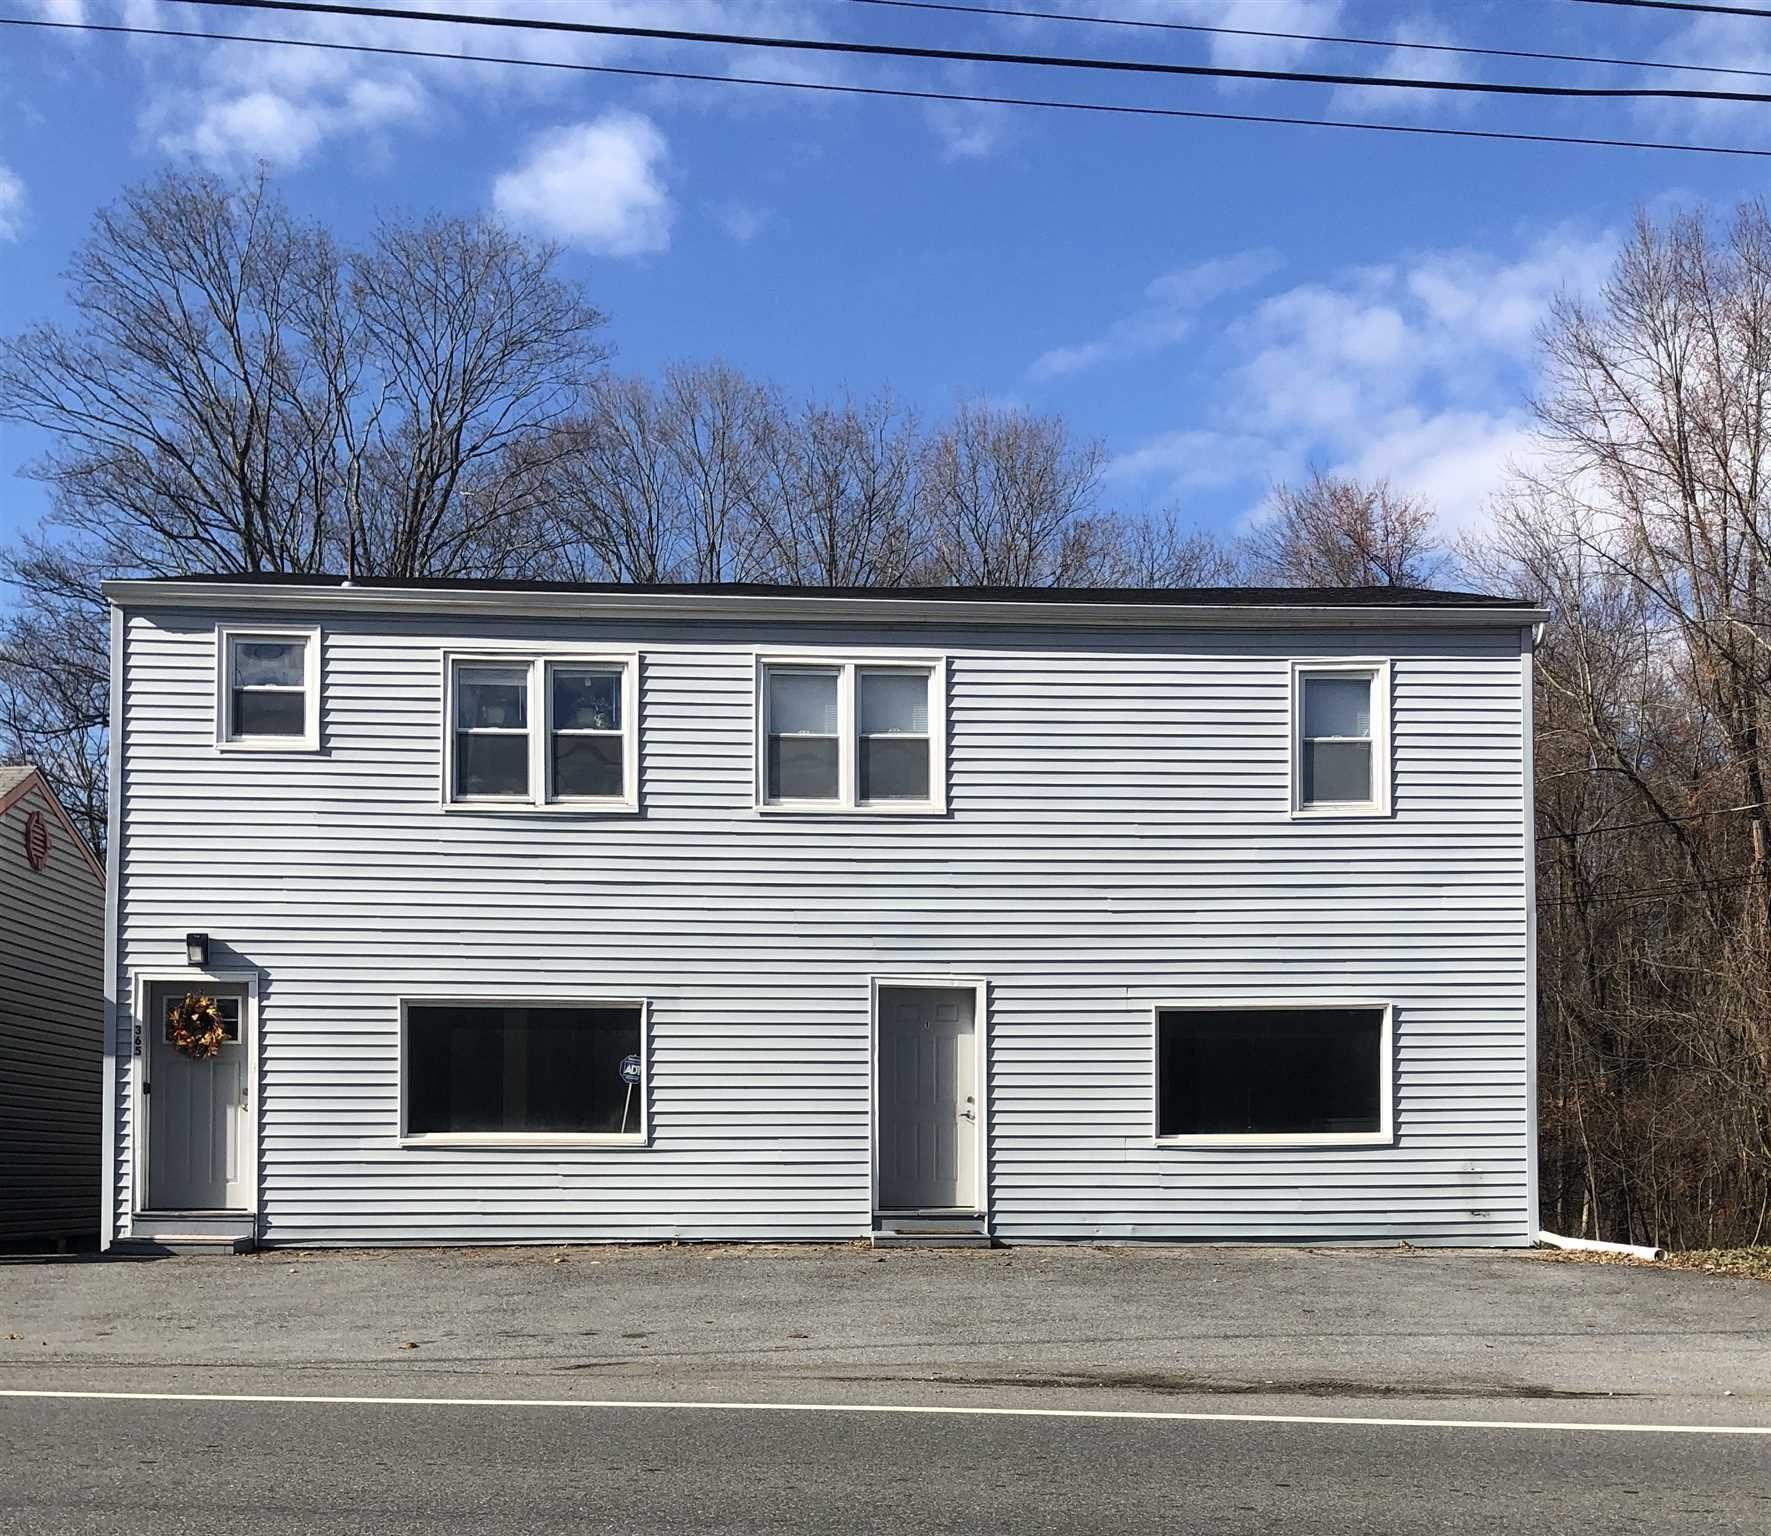 365 RTE.82, Hopewell Junction, NY 12533 - #: 396627